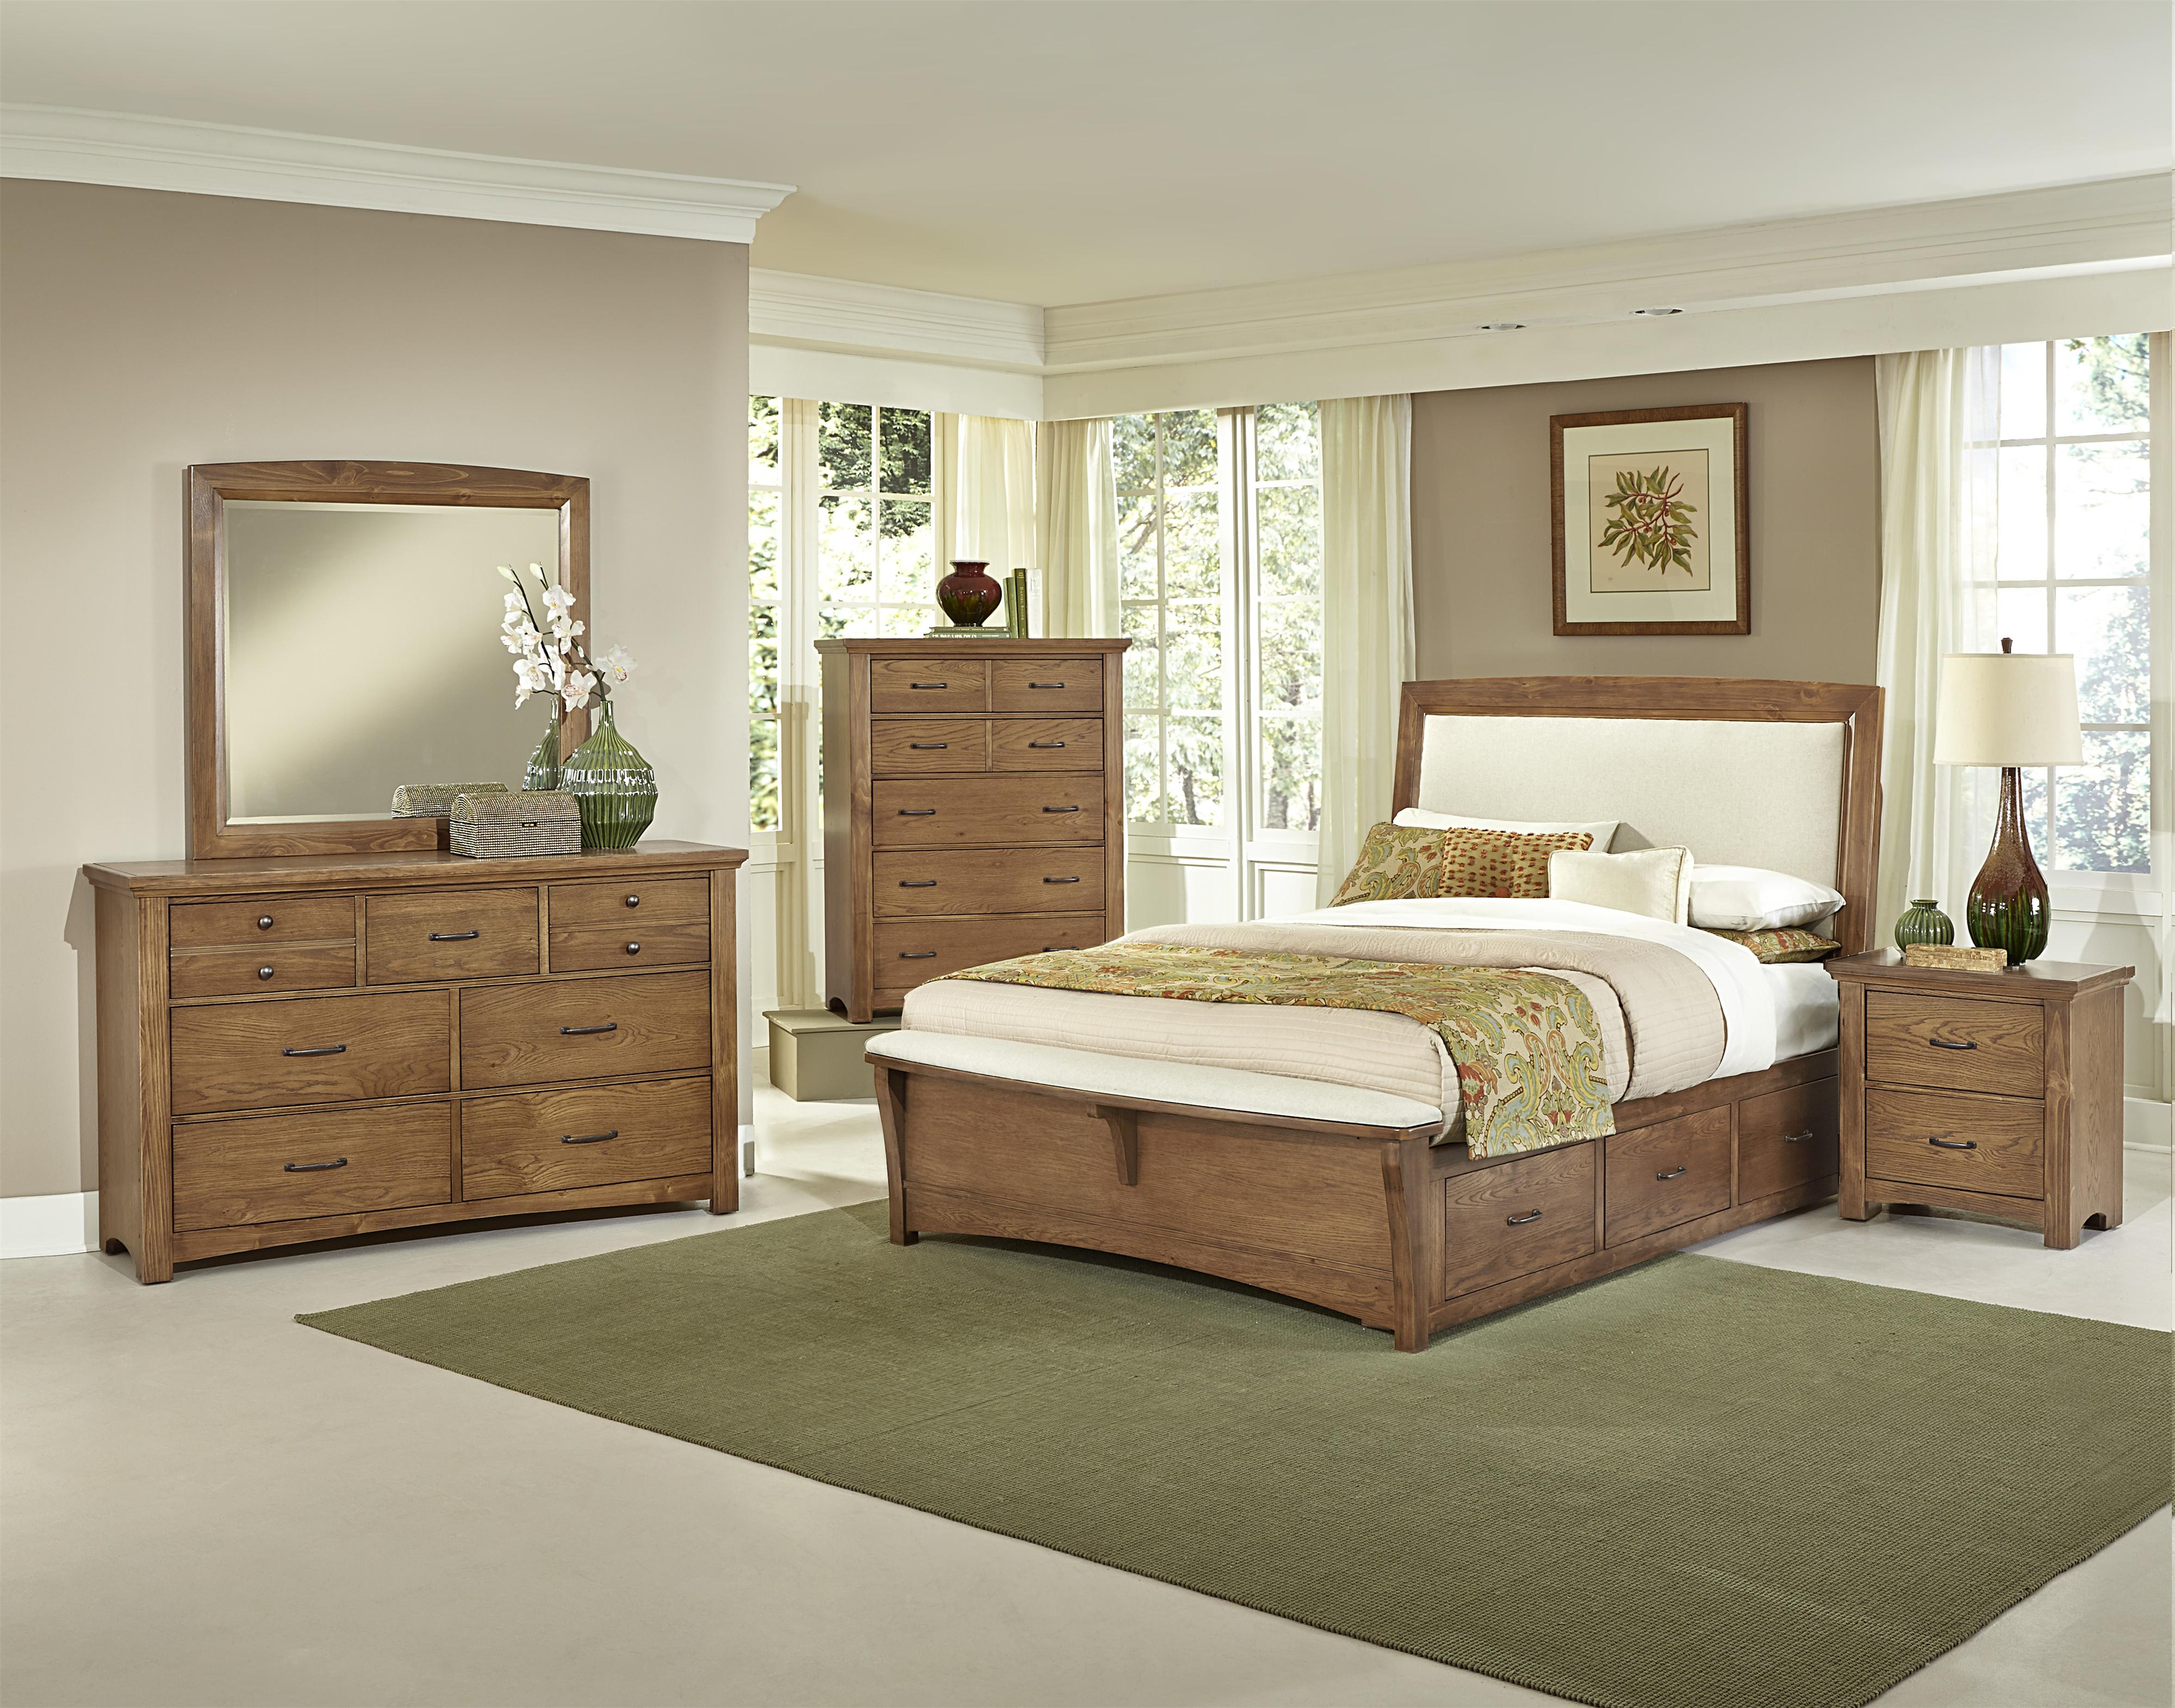 Vaughan Bassett Transitions Queen Bedroom Group - Item Number: BB63 Q Bedroom Group 5